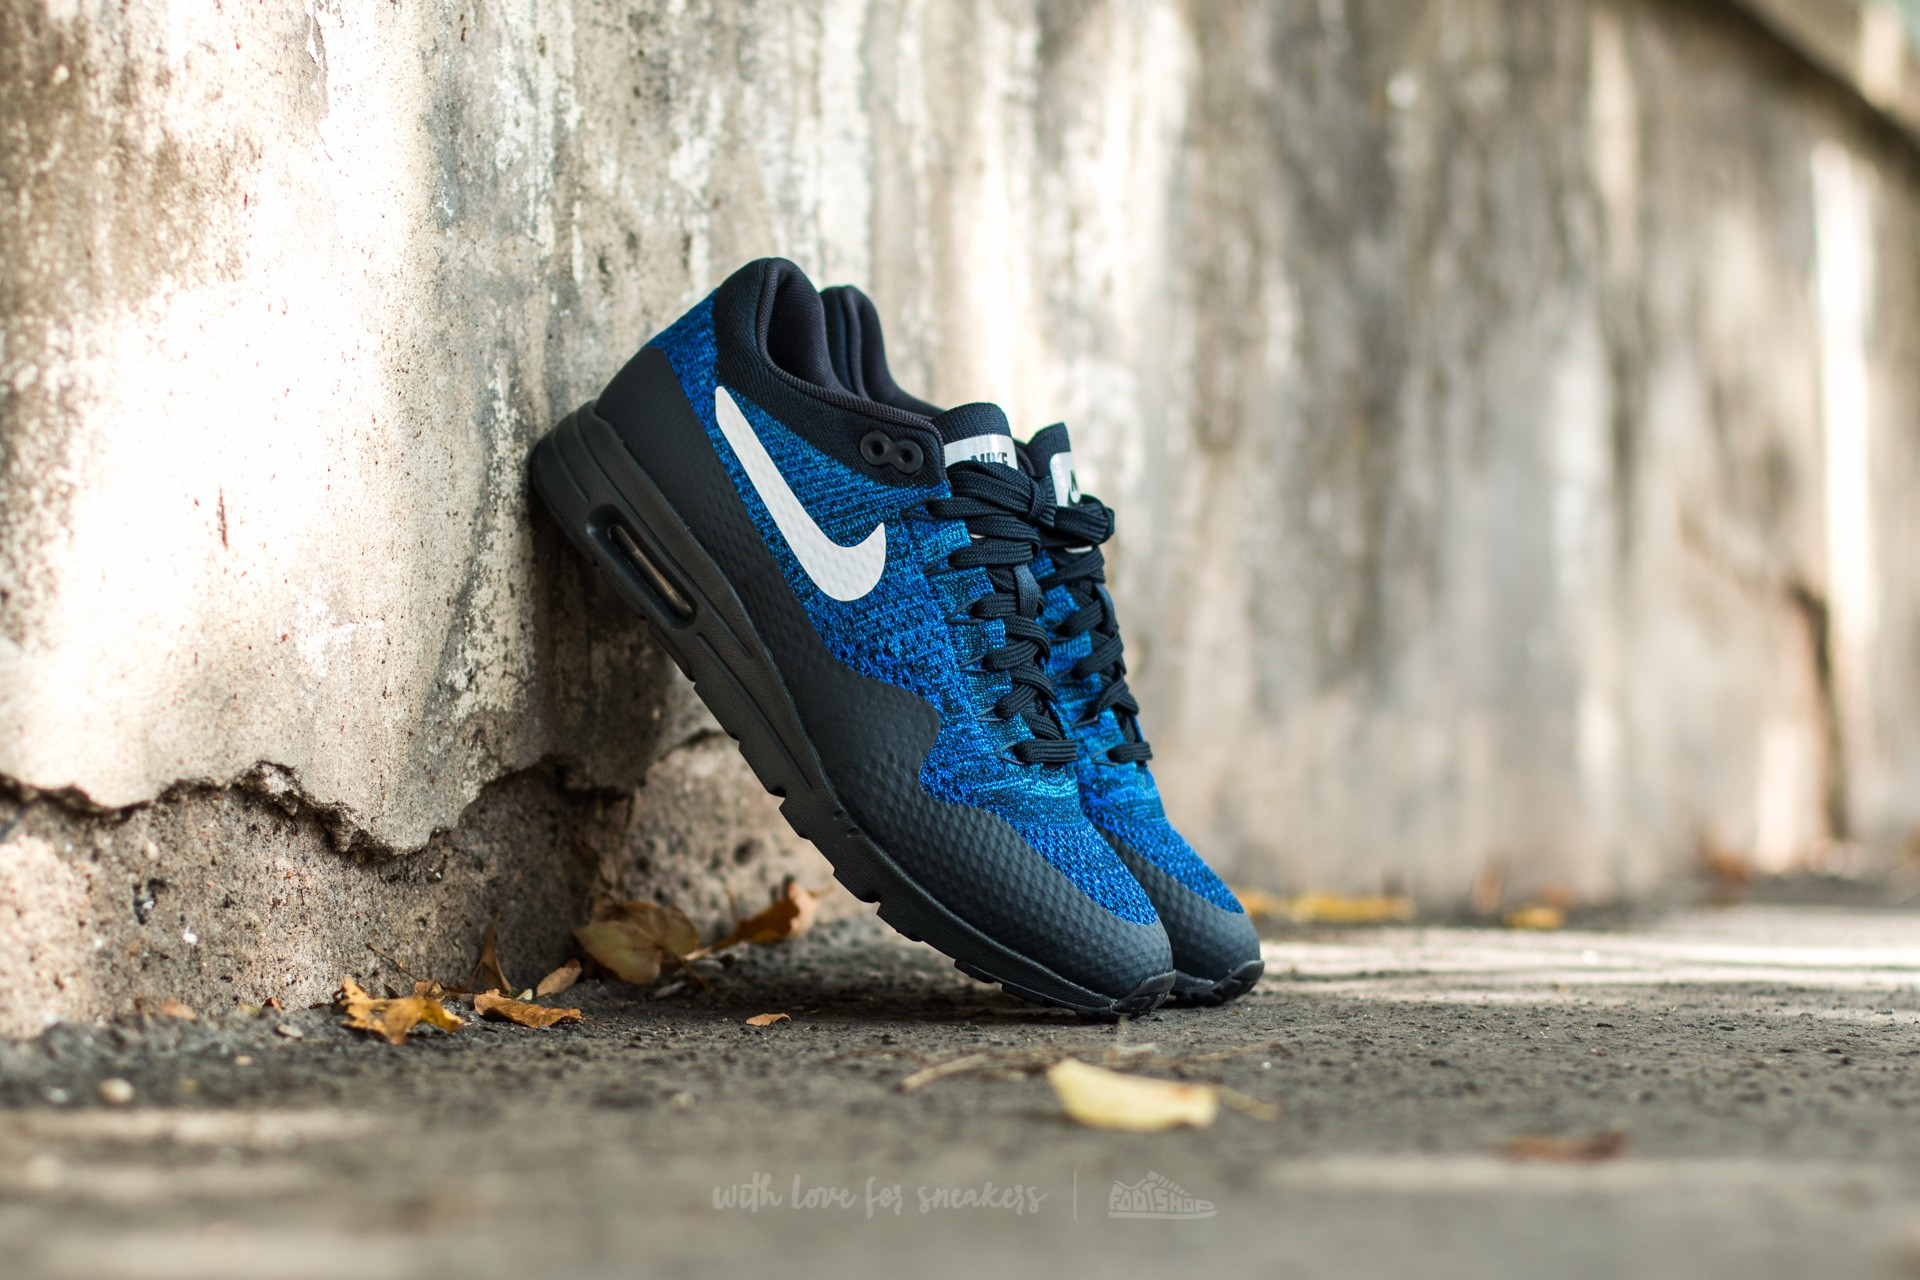 989da1b27eb4 Nike W Air Max 1 Ultra Flyknit Dark Obsidian  White-Racer Blue-Photo ...